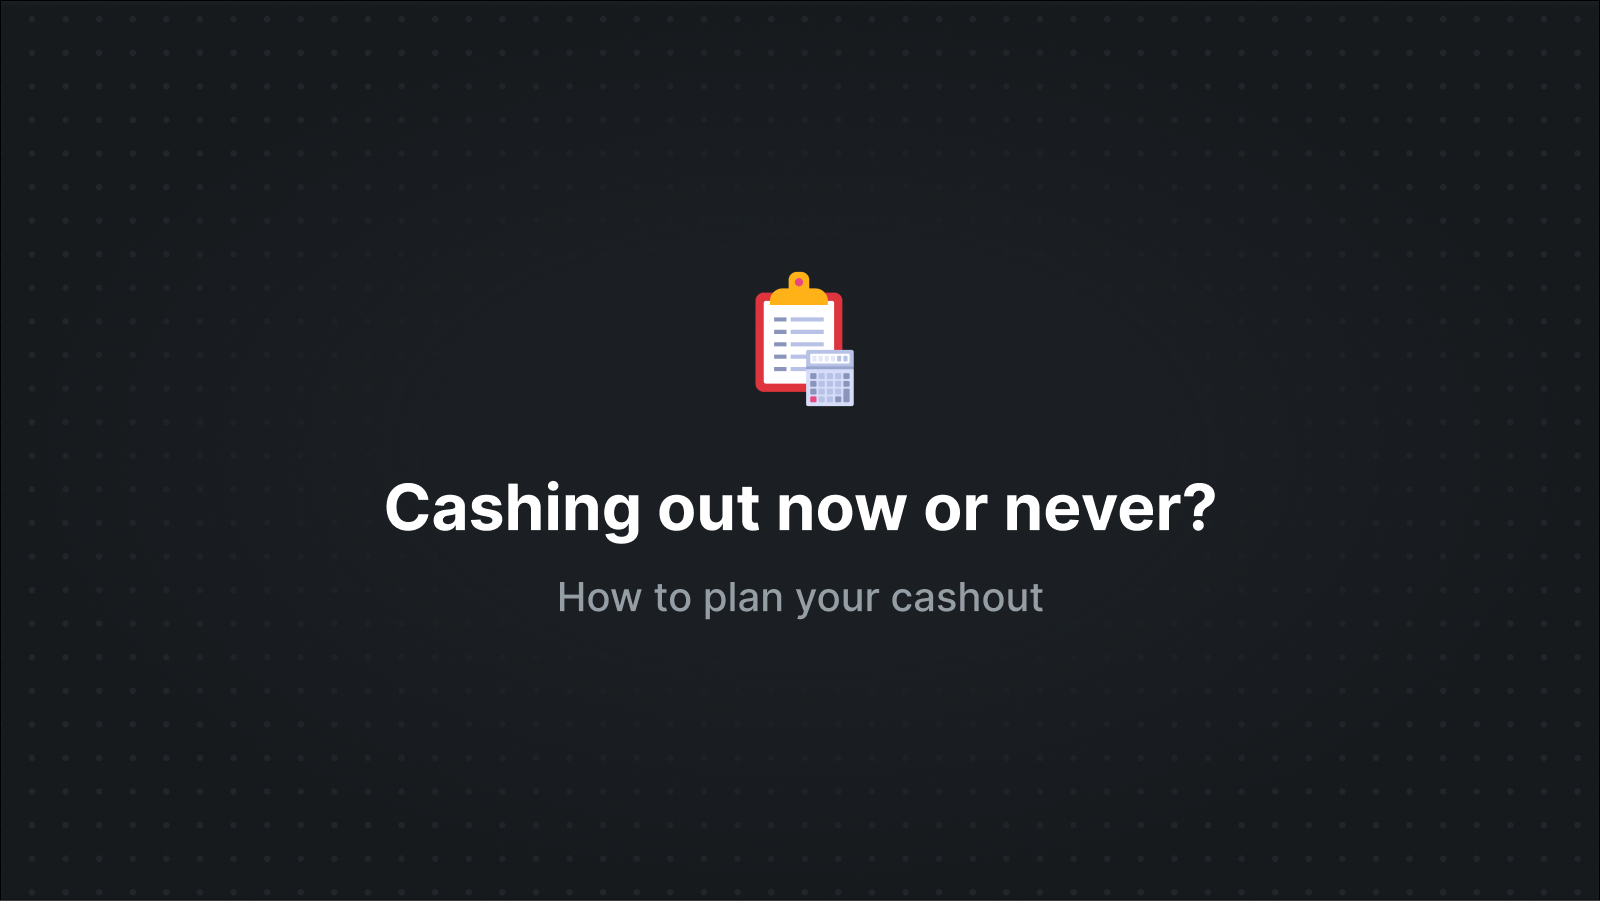 Cashout - Now or Never?